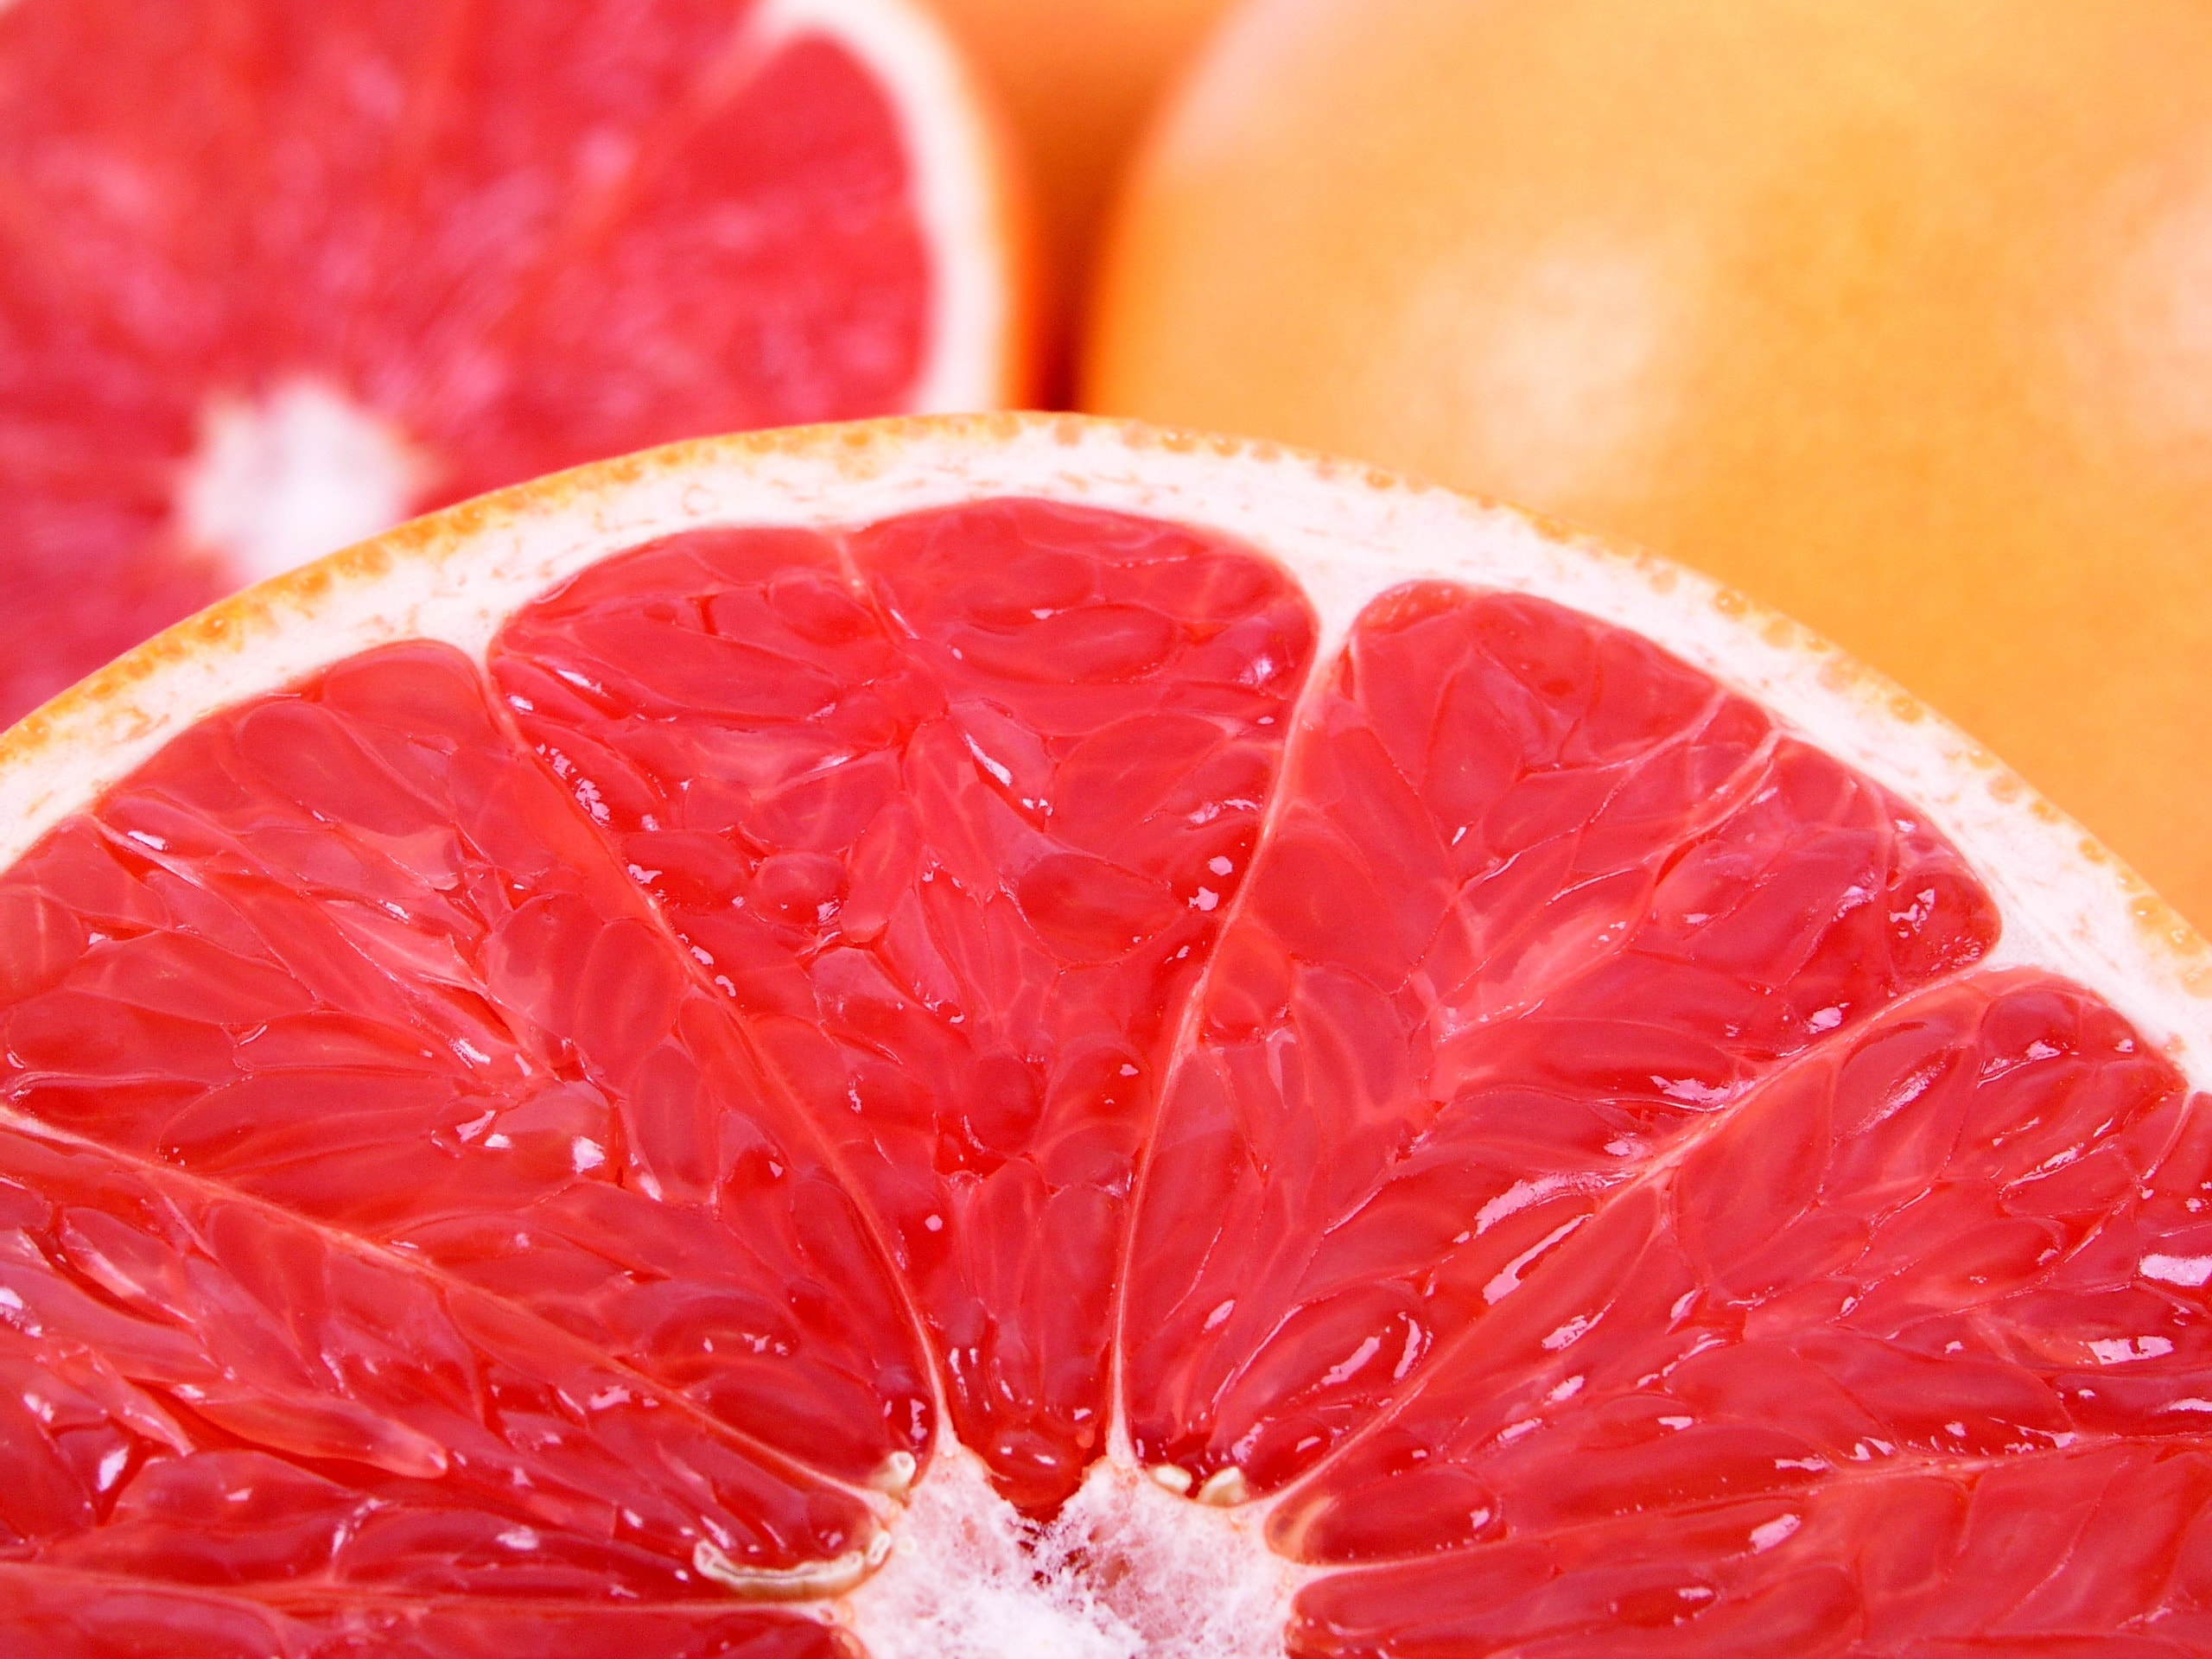 Grapefruit widescreen wallpapers